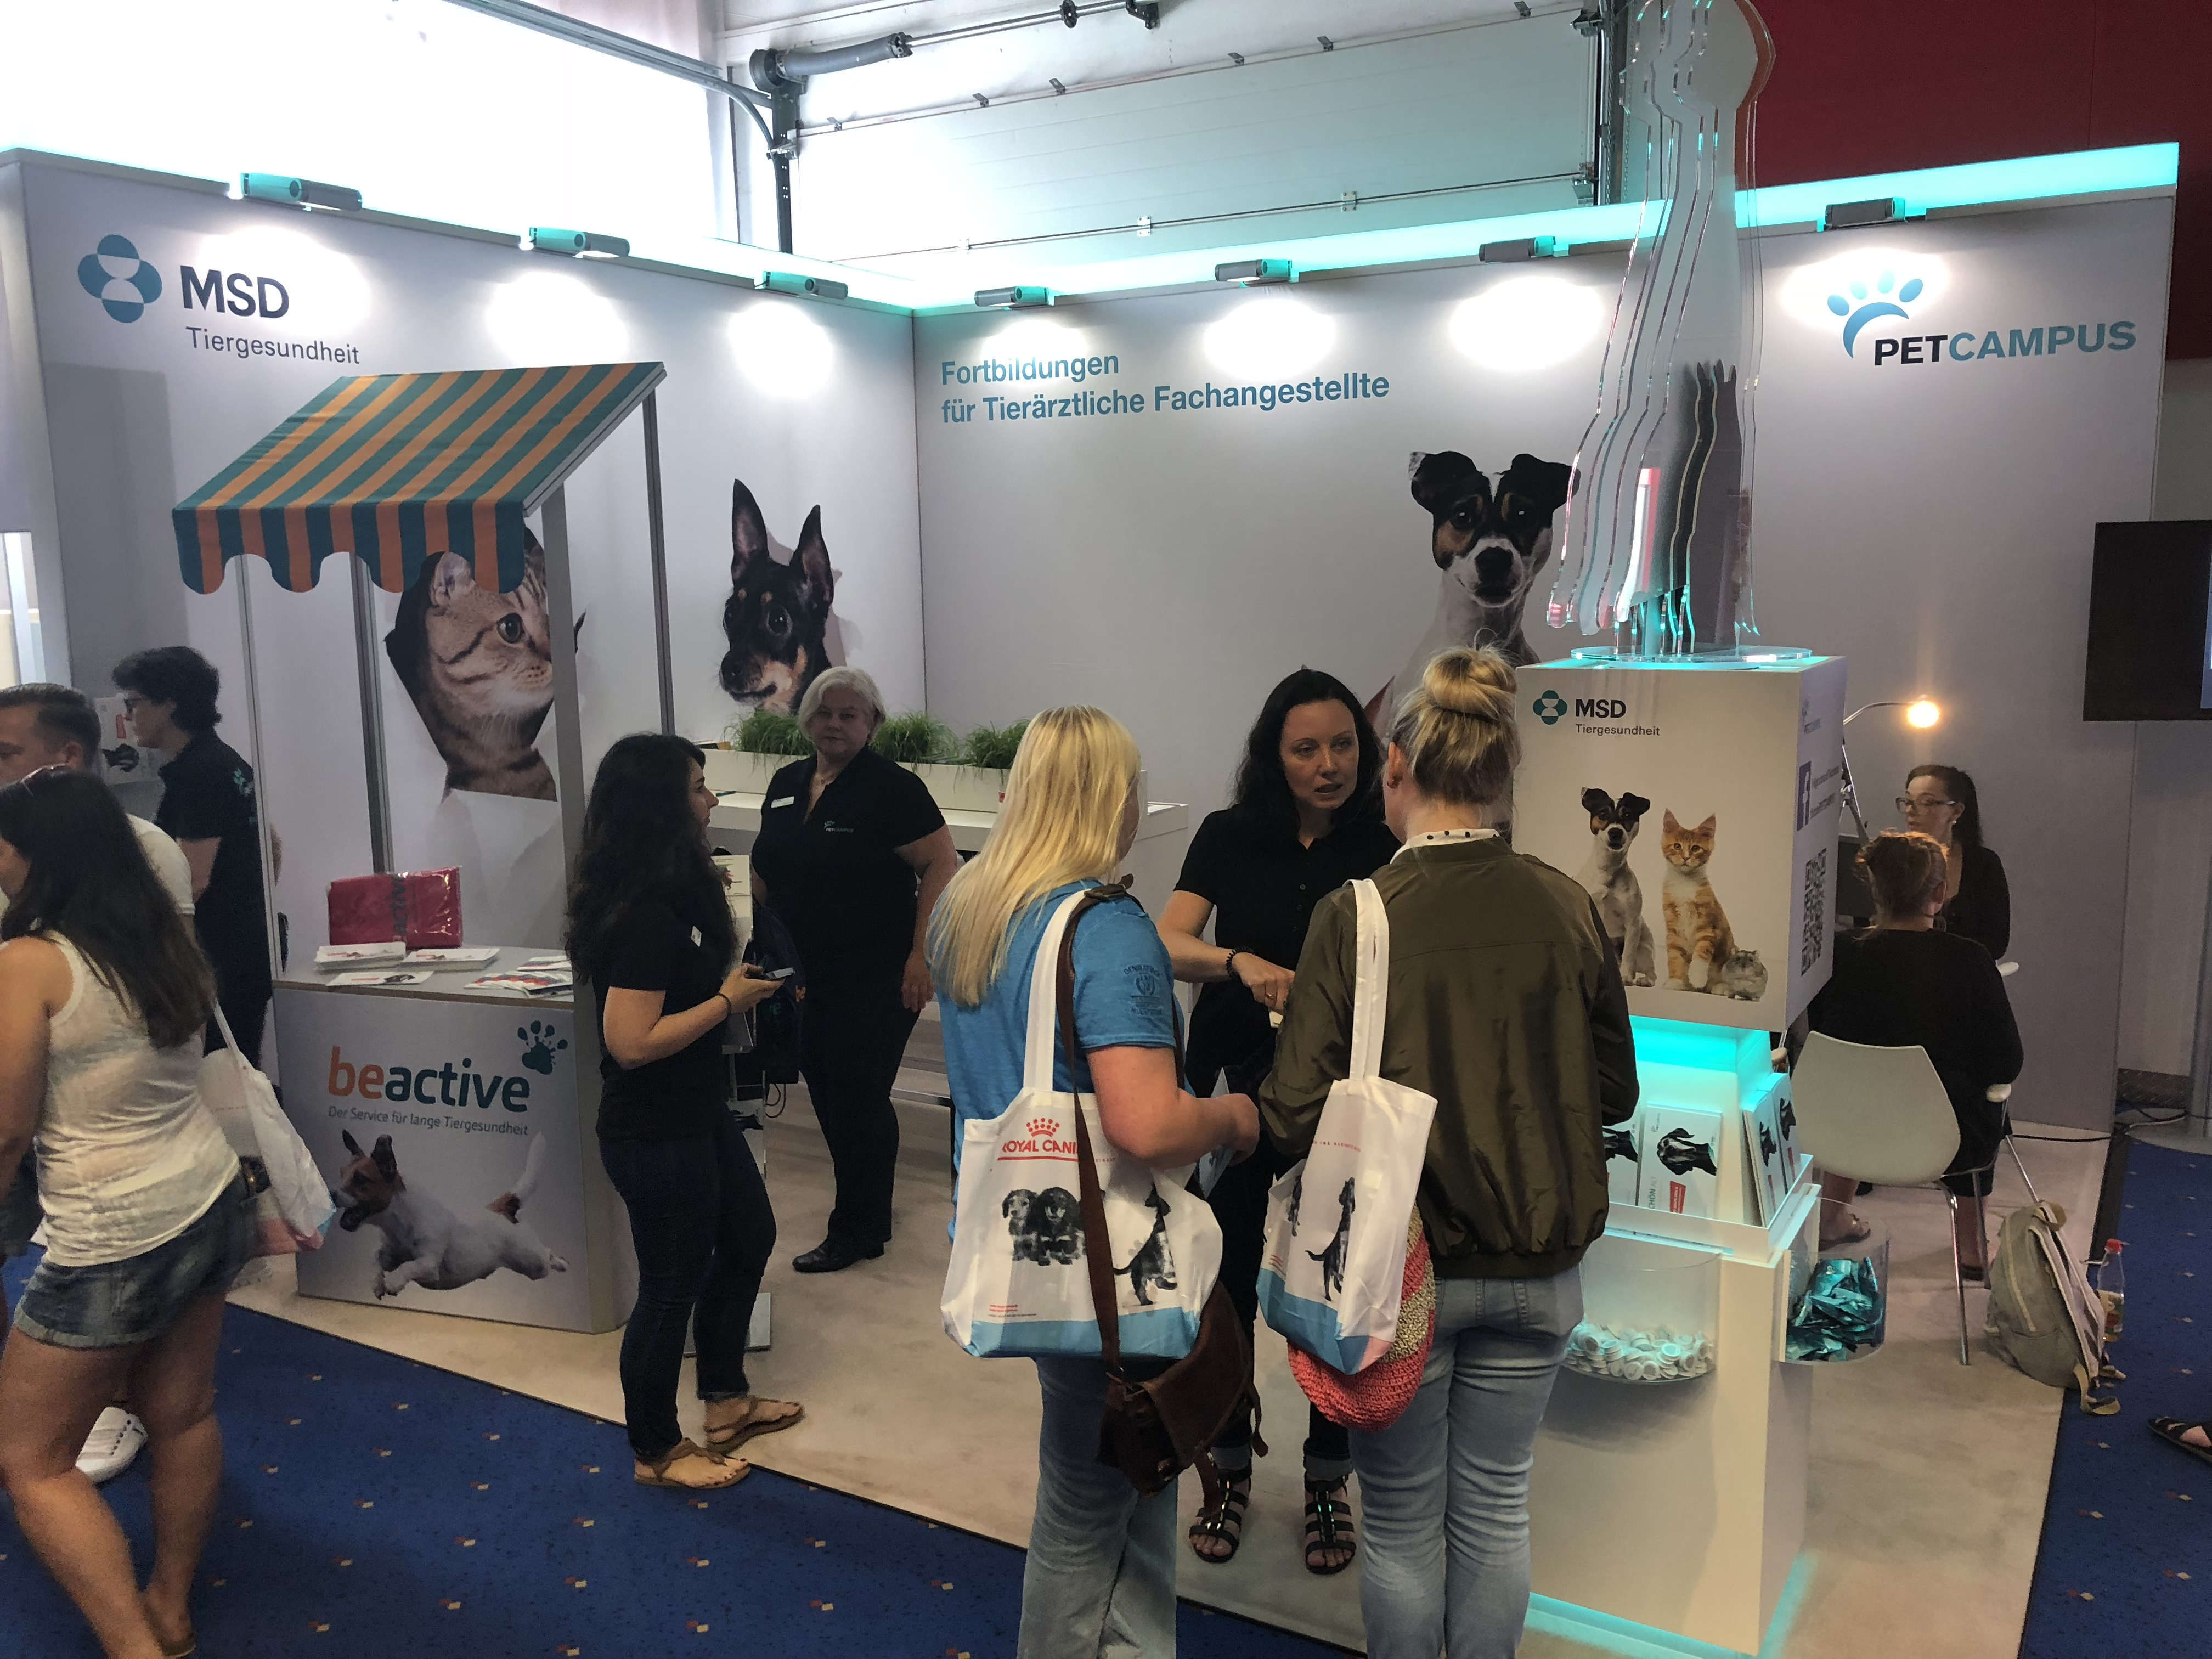 PETCAMPUS MSD Stand